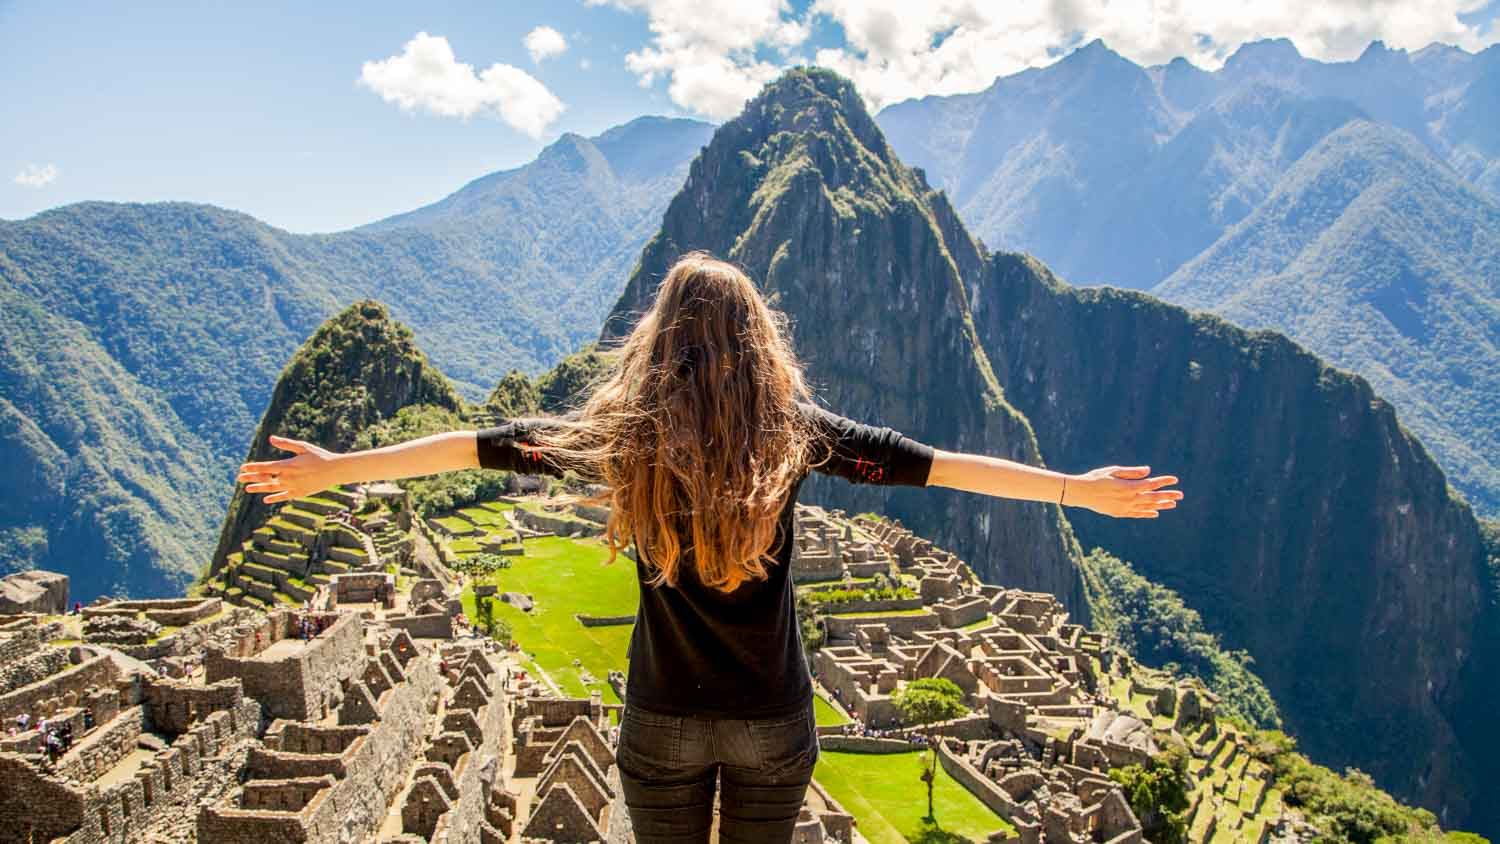 Top 5 things visitors often miss at Machu Picchu